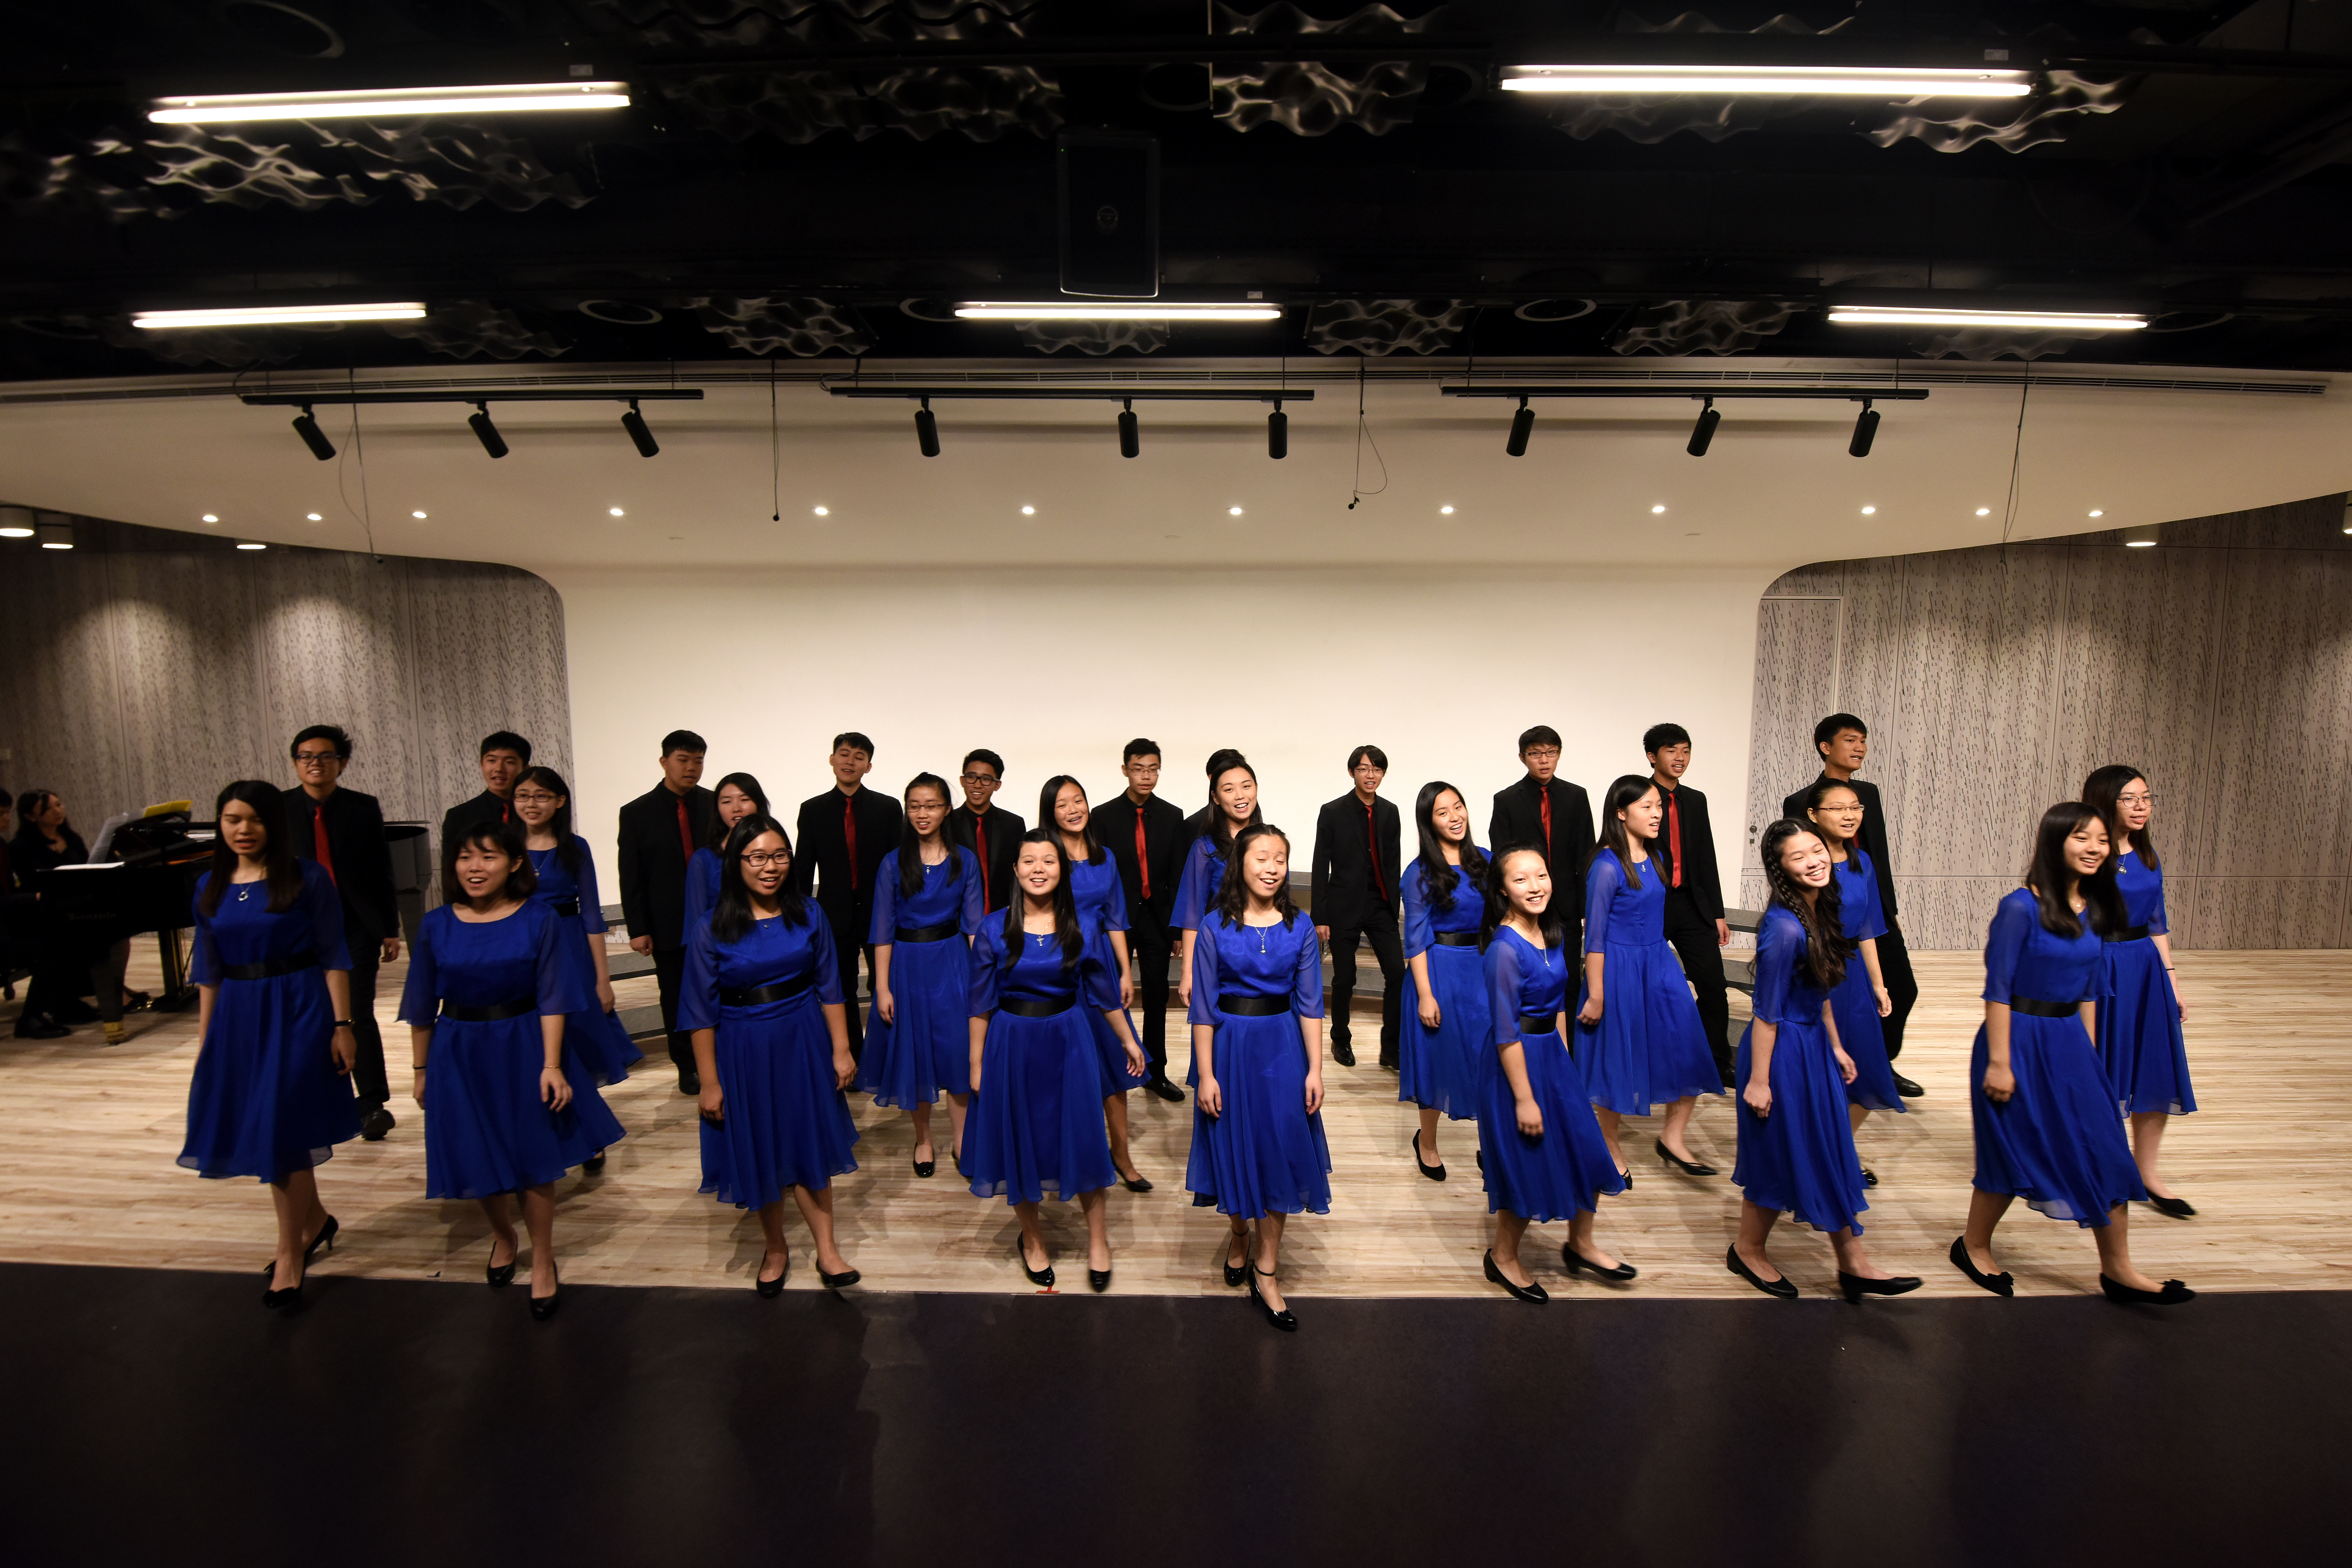 https://www.hkcchoir.org/sites/default/files/chamber_youth_2017_youth_mini.jpg